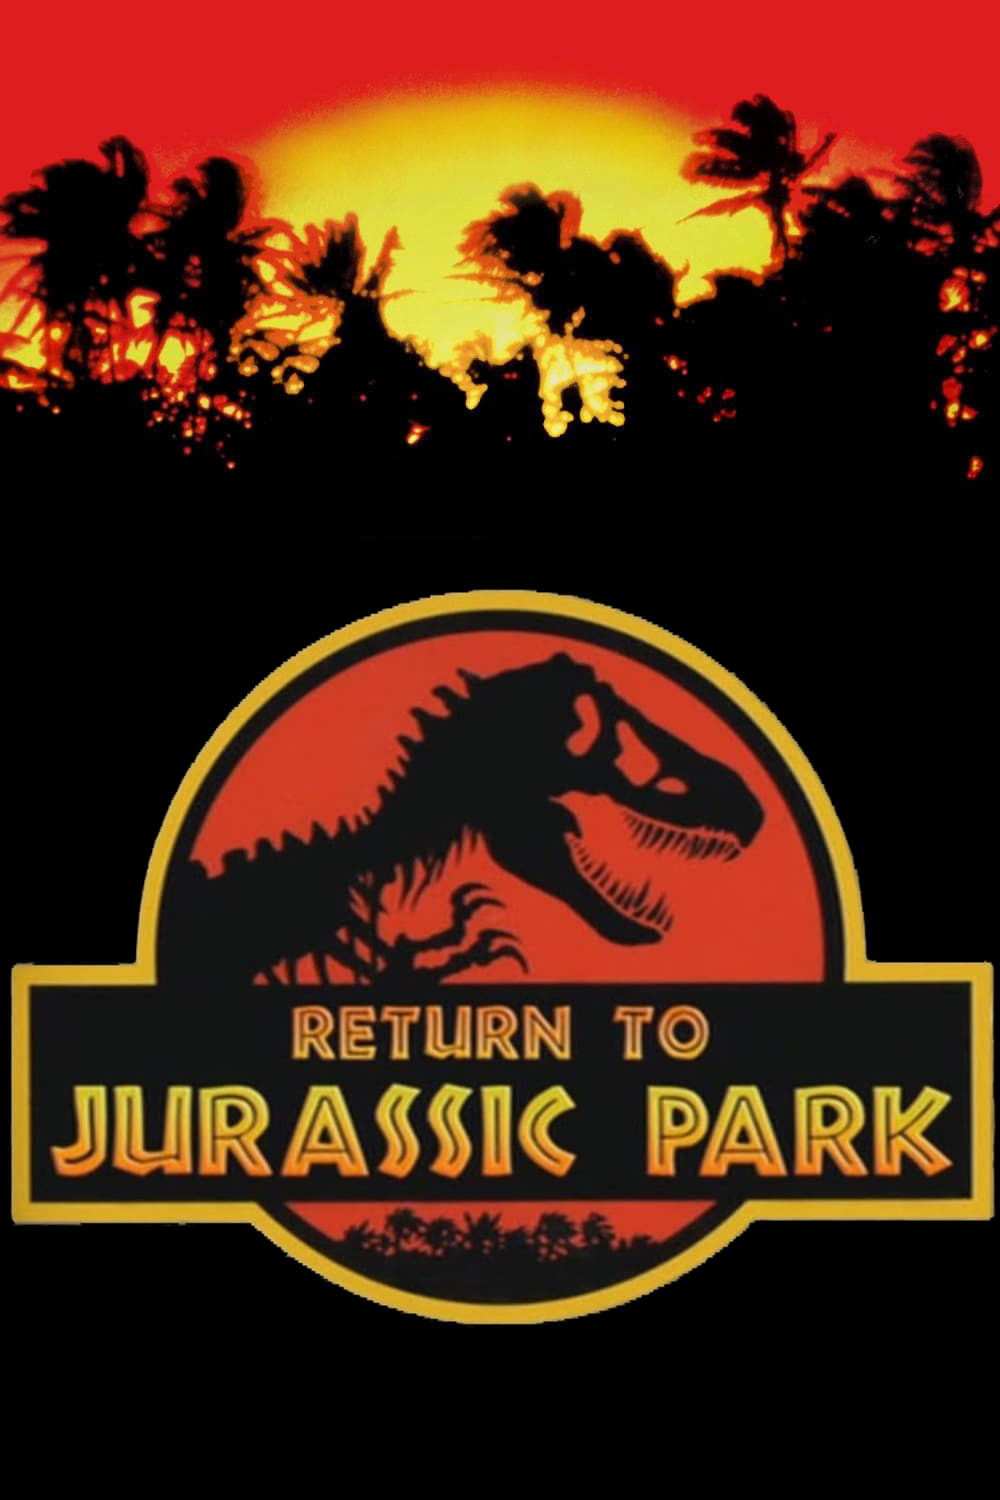 Return to Jurassic Park